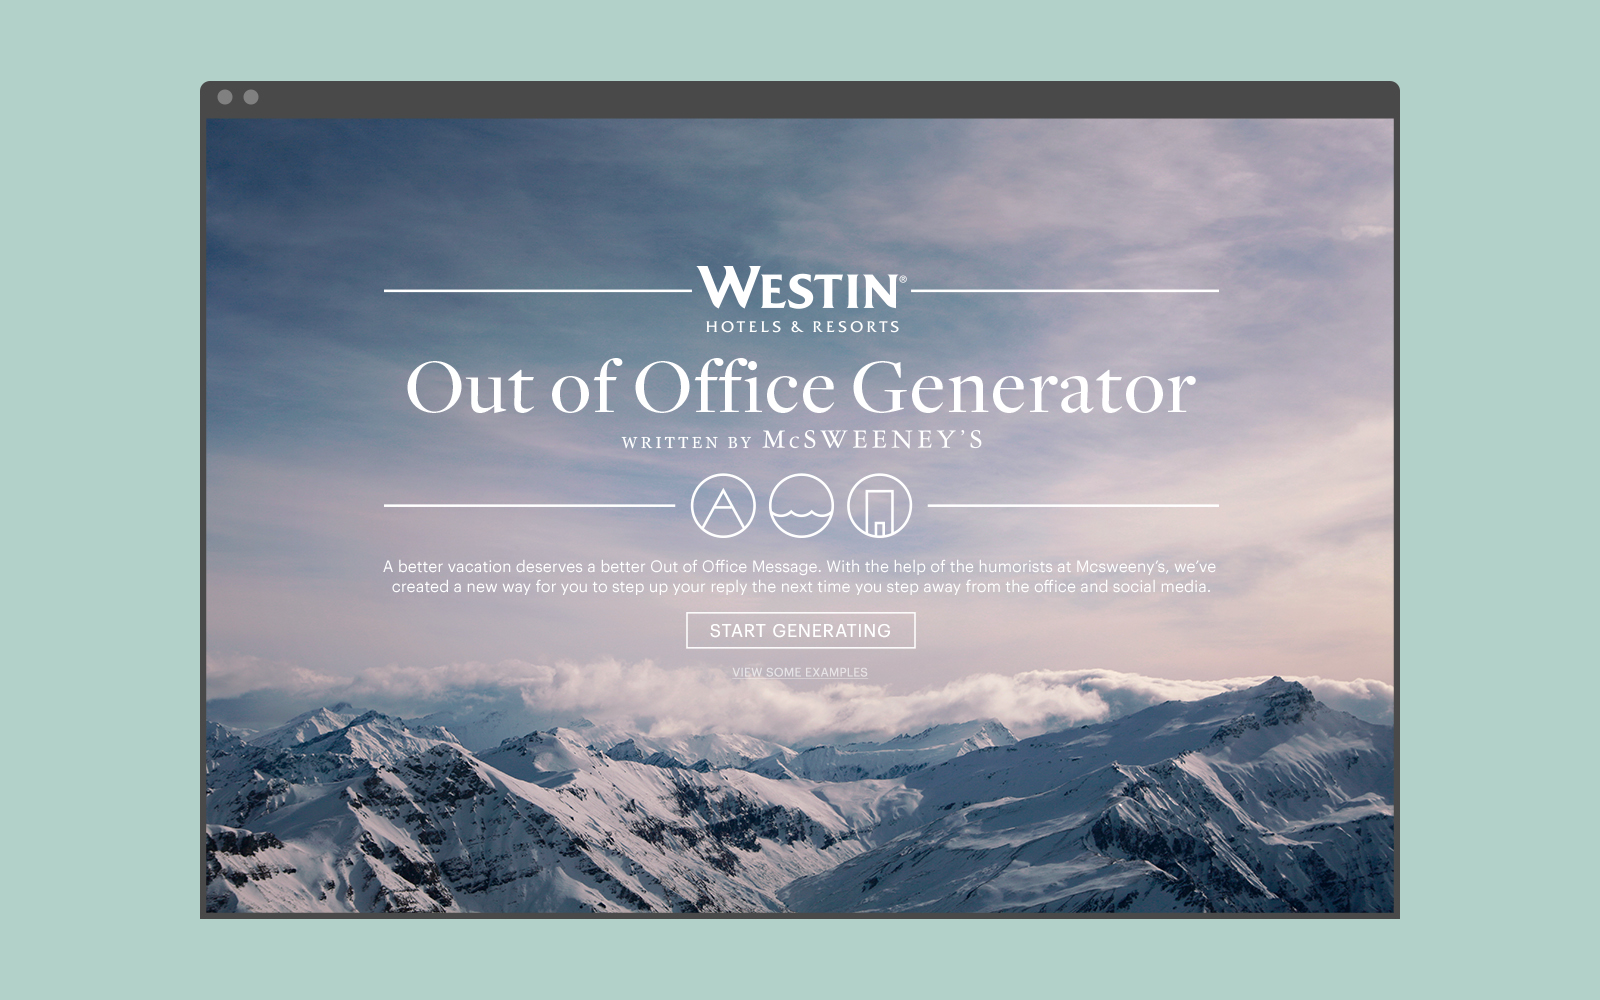 Westin Out of Office Generator — Crissy Fetcher